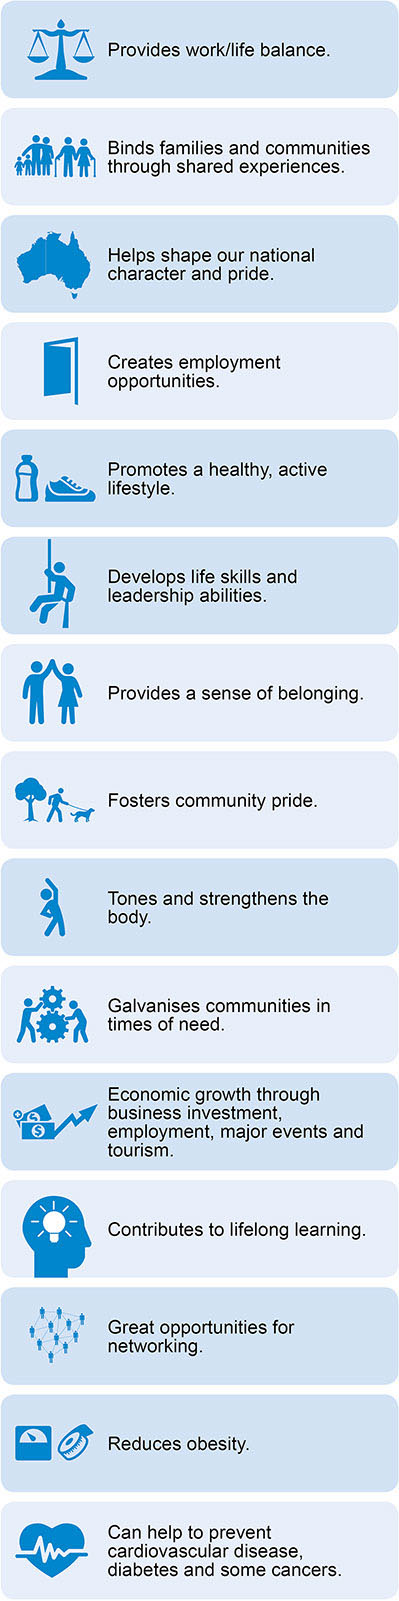 30 ways sport and recreation benefits people and communities (the first 15)